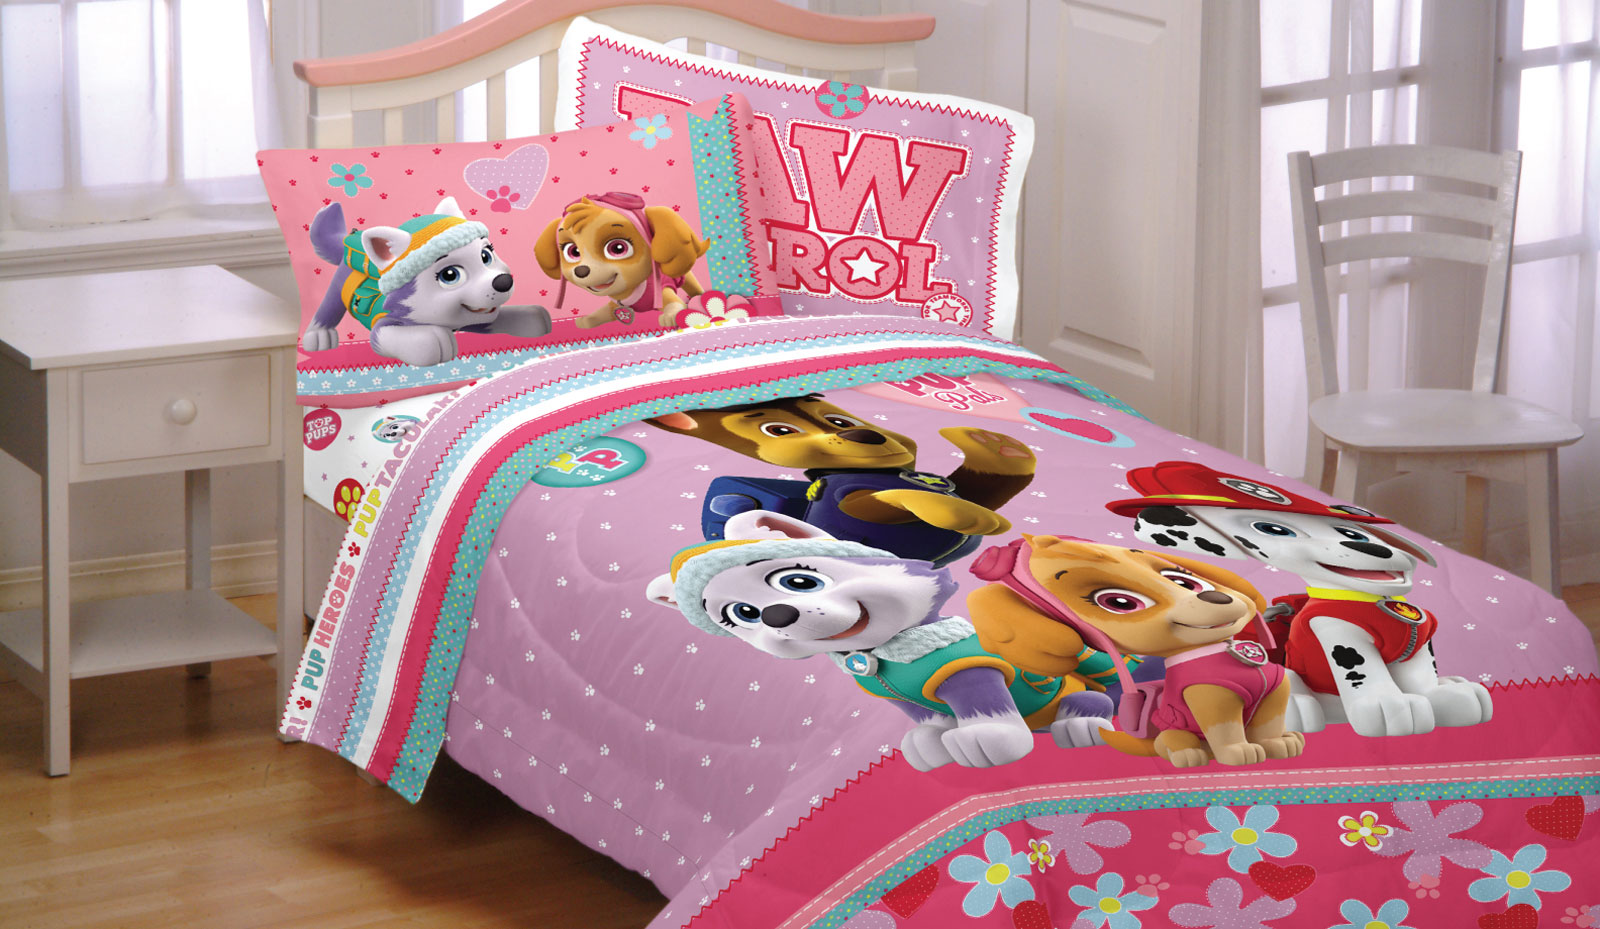 Compare Paw Patrol Twin Bed Comforter Ruff Miscellaneous